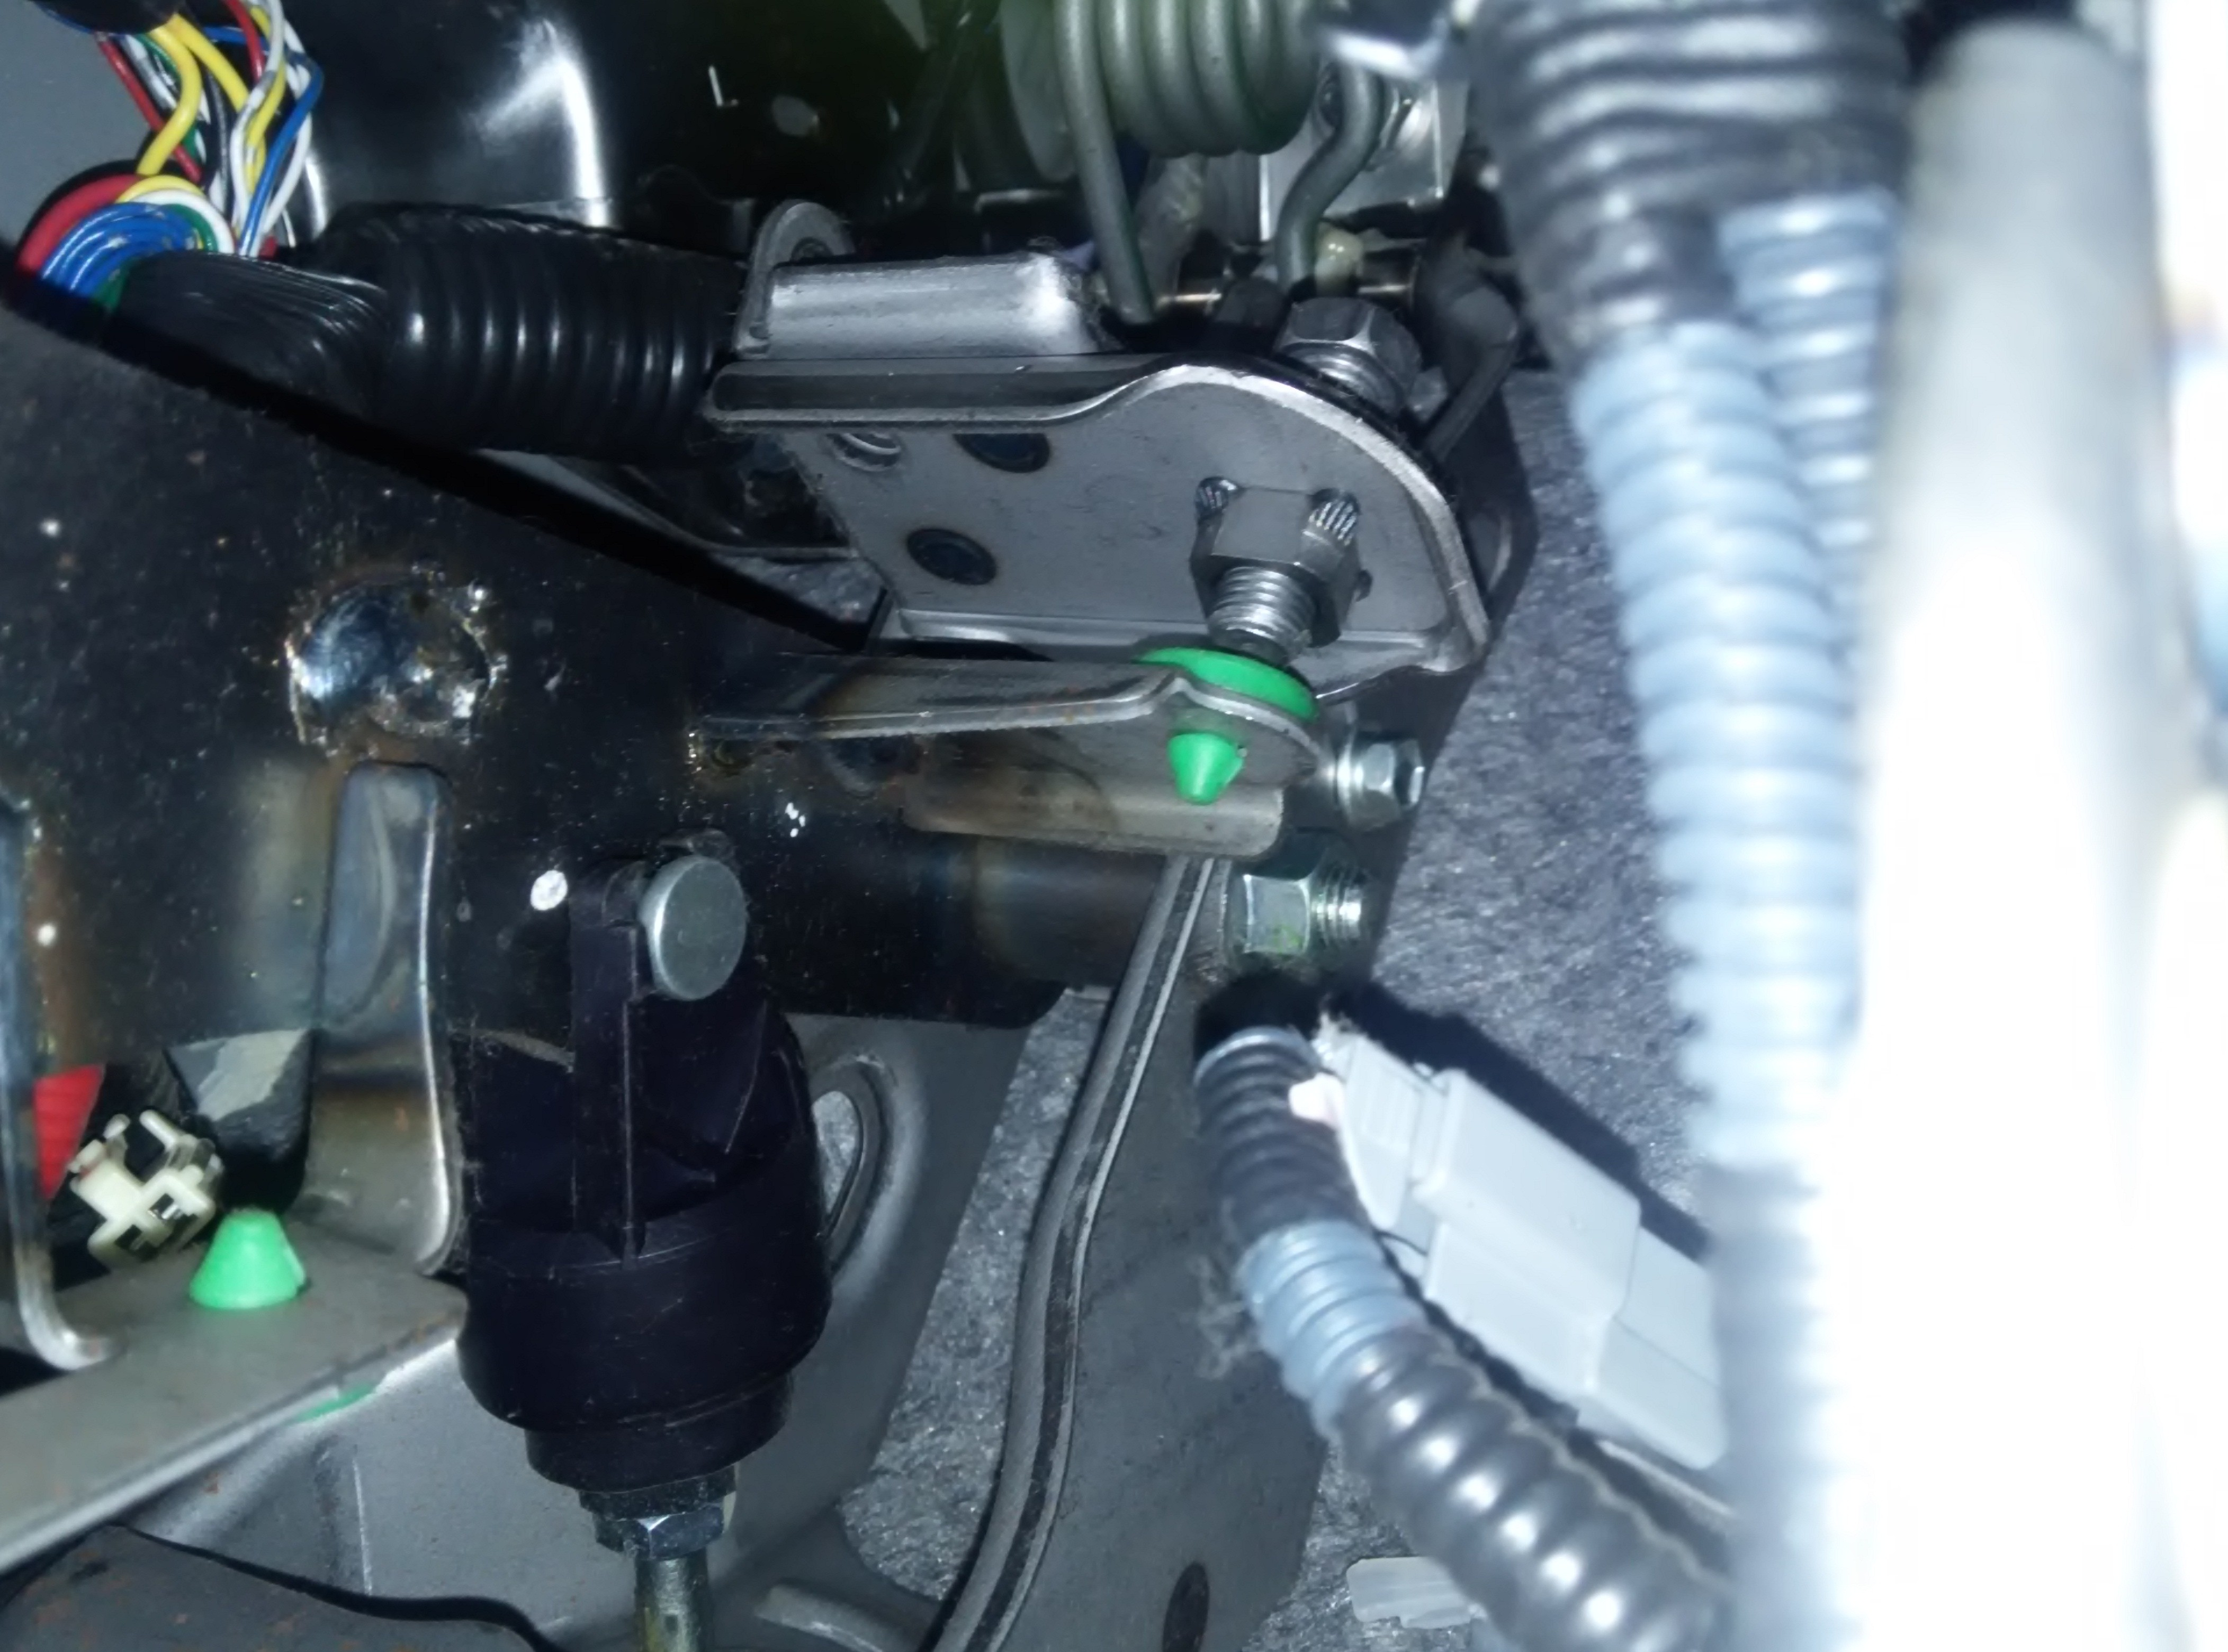 Installing Cruise Control In A 2008 Rav4 Manual Toyota Nation 1989 Isuzu Trooper Wiring Report This Image